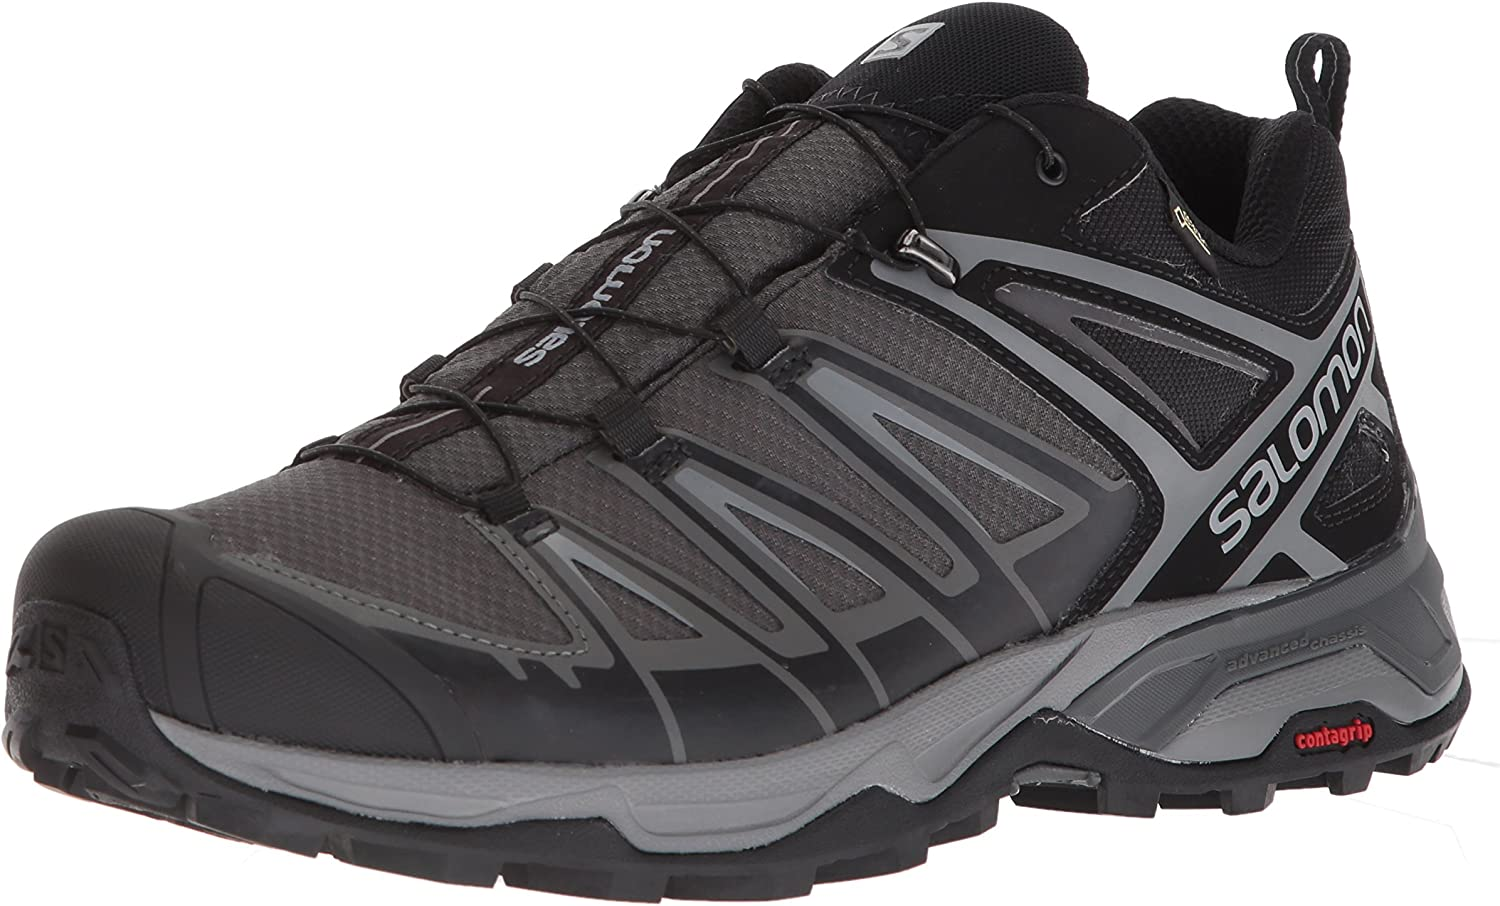 Salomon Men's X Ultra 3 Wide GTX Hiking